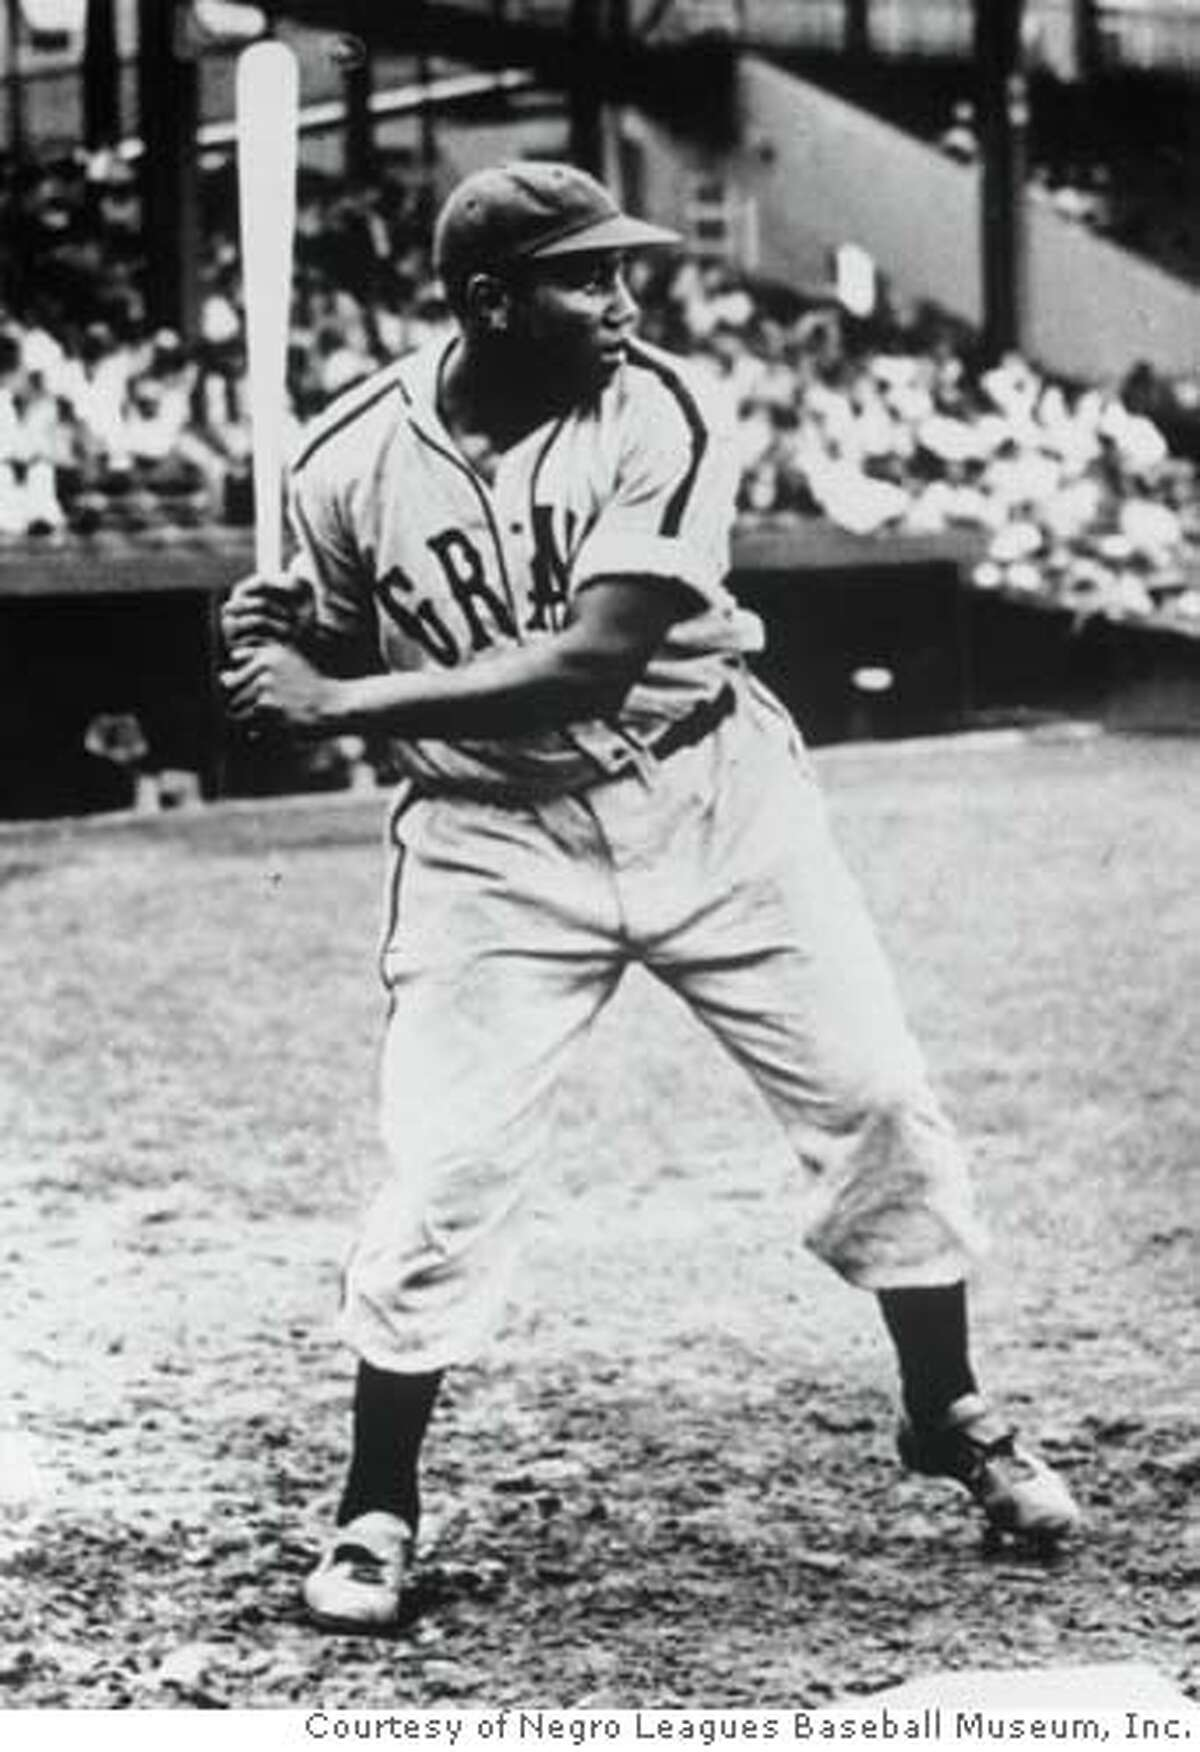 ONE TIME USE ONLY - MUST CREDIT NEGRO LEAGUES BASEBALL MUSEUM, INC. Undated photo of Josh Gibson, considered the greatest hitting slugger in Negro League history. Gibson played with the Pittsburgh Crawfords from 1930-1937 and then the Homestead Grays from 1937 until 1946. Courtesy/Negro Leagues Baseball Museum, Inc. Ran on: 05-05-2006 Ran on: 05-05-2006